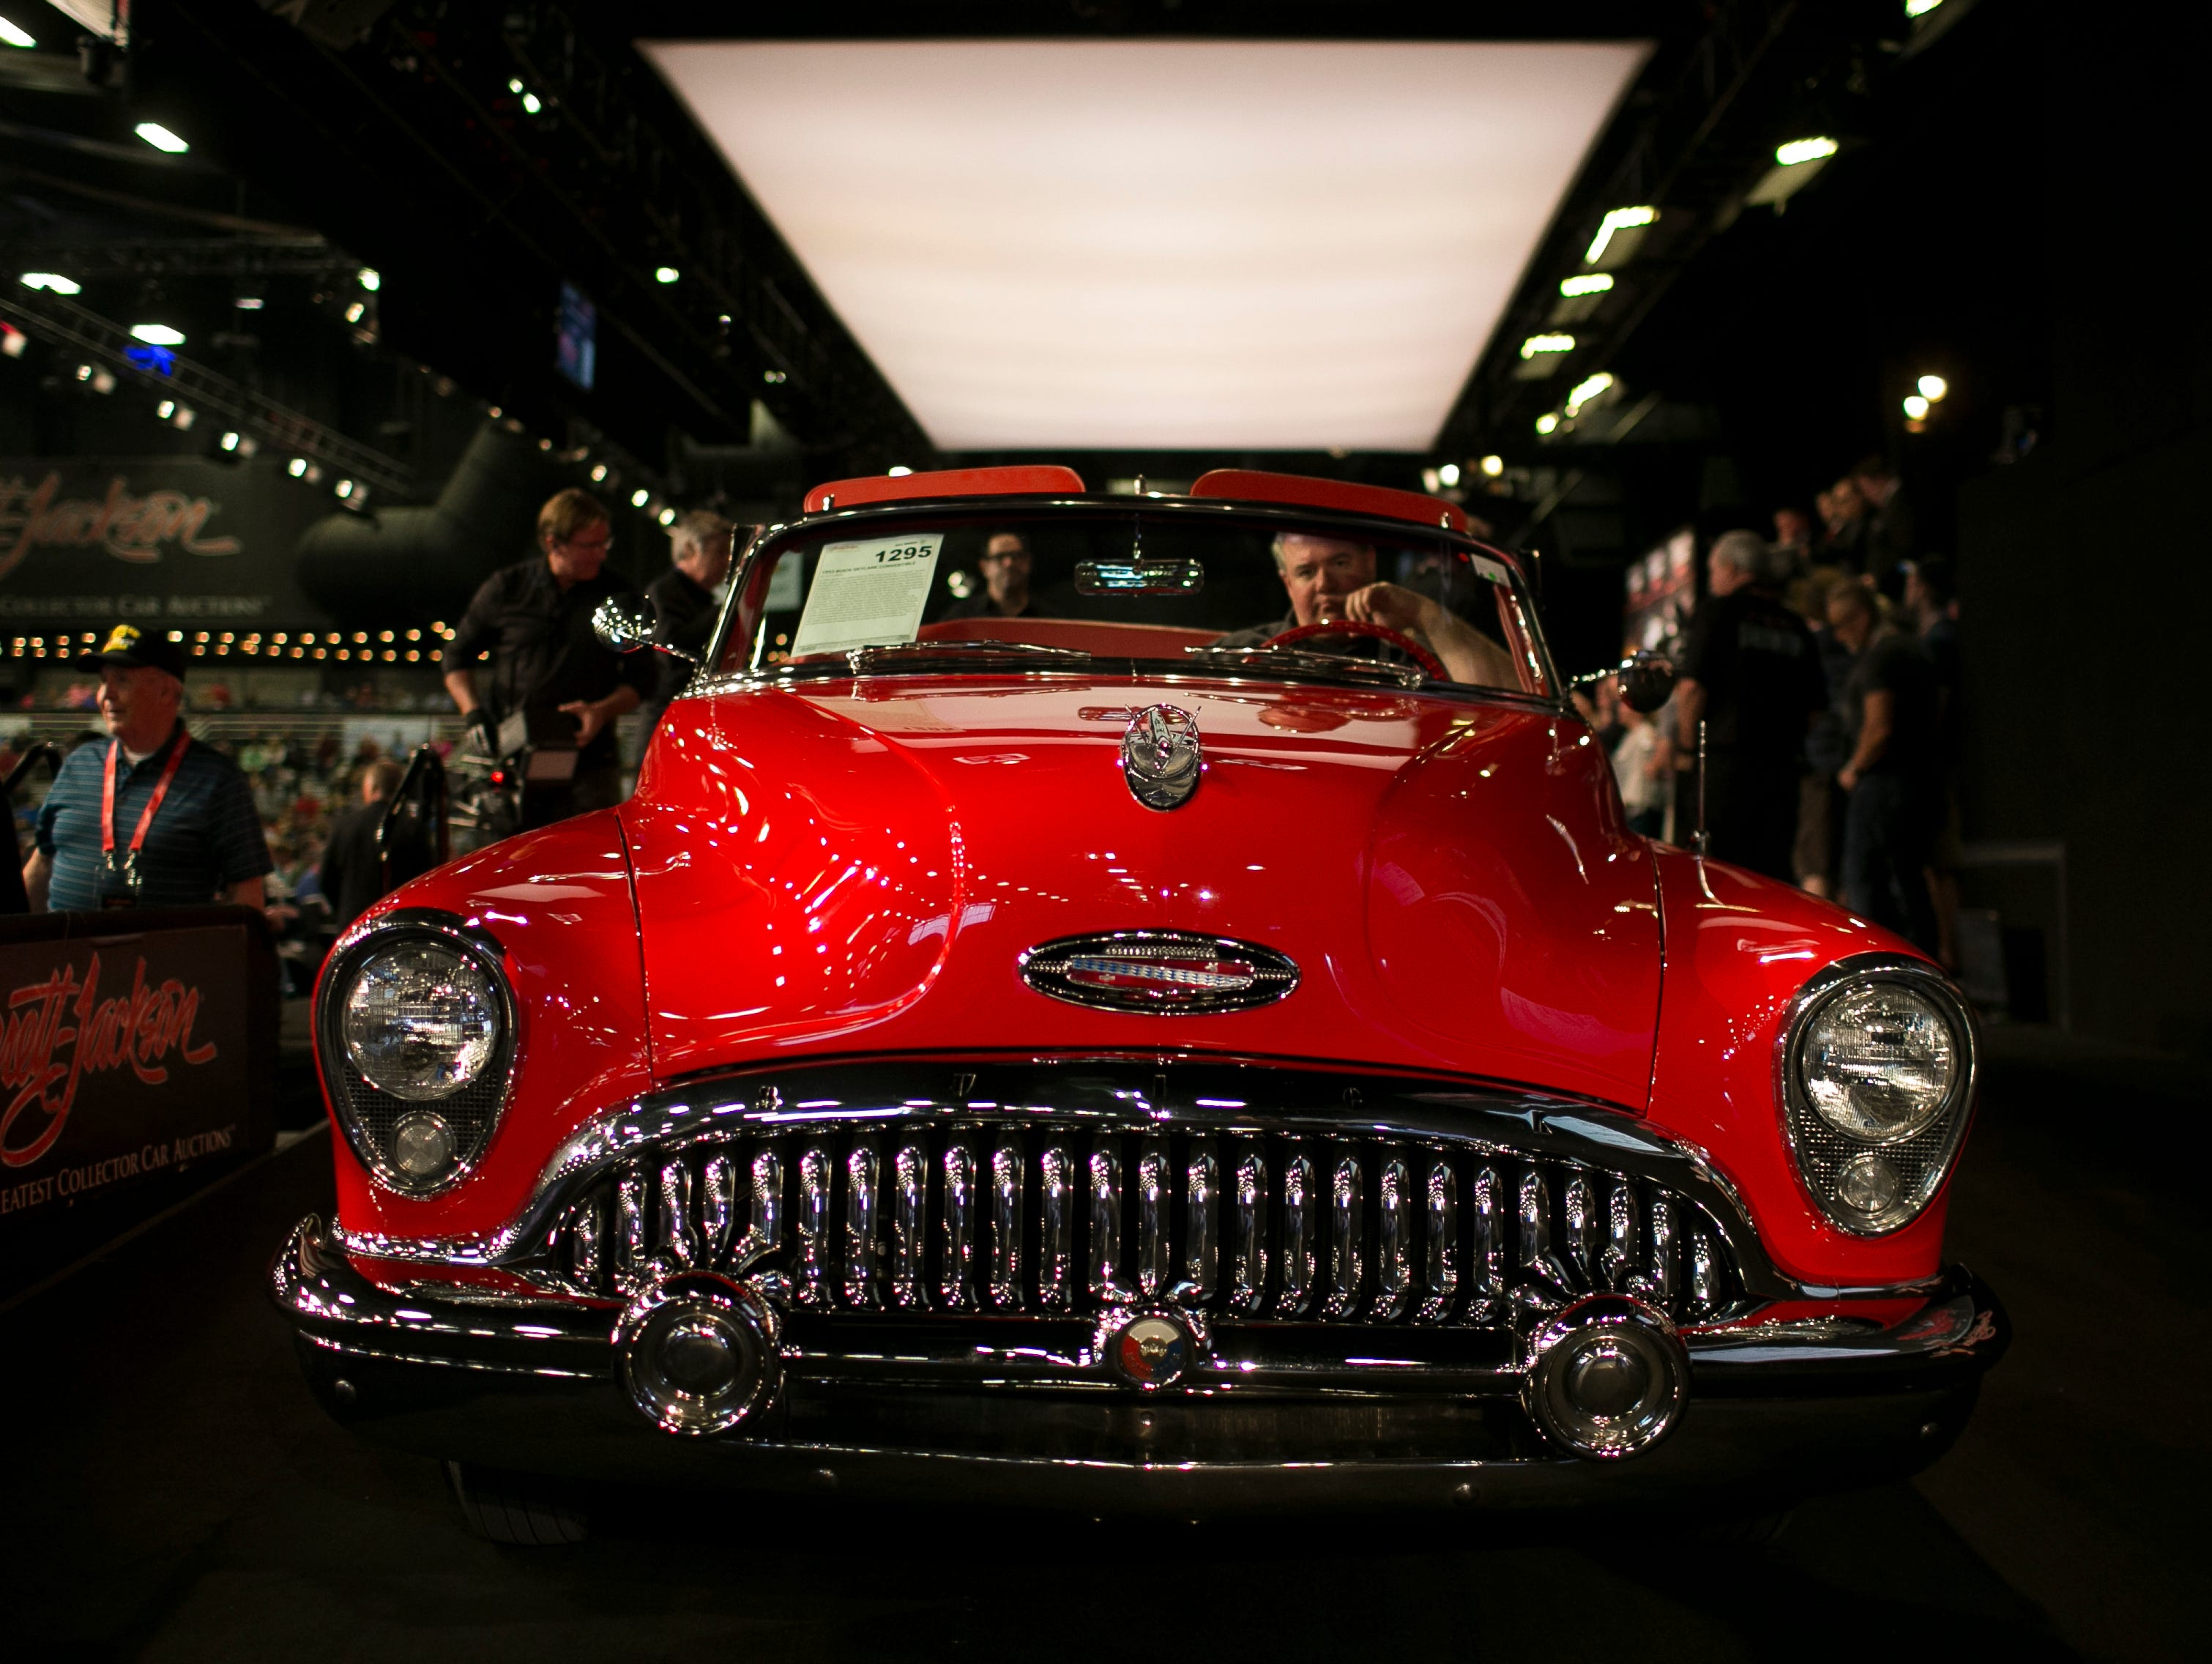 A 1953 Buick Skylark Convertible is driven on the auction block at Barrett-Jackson collector-car auction at WestWorld on Sat. January 19, 2019 in Scottsdale, Ariz.